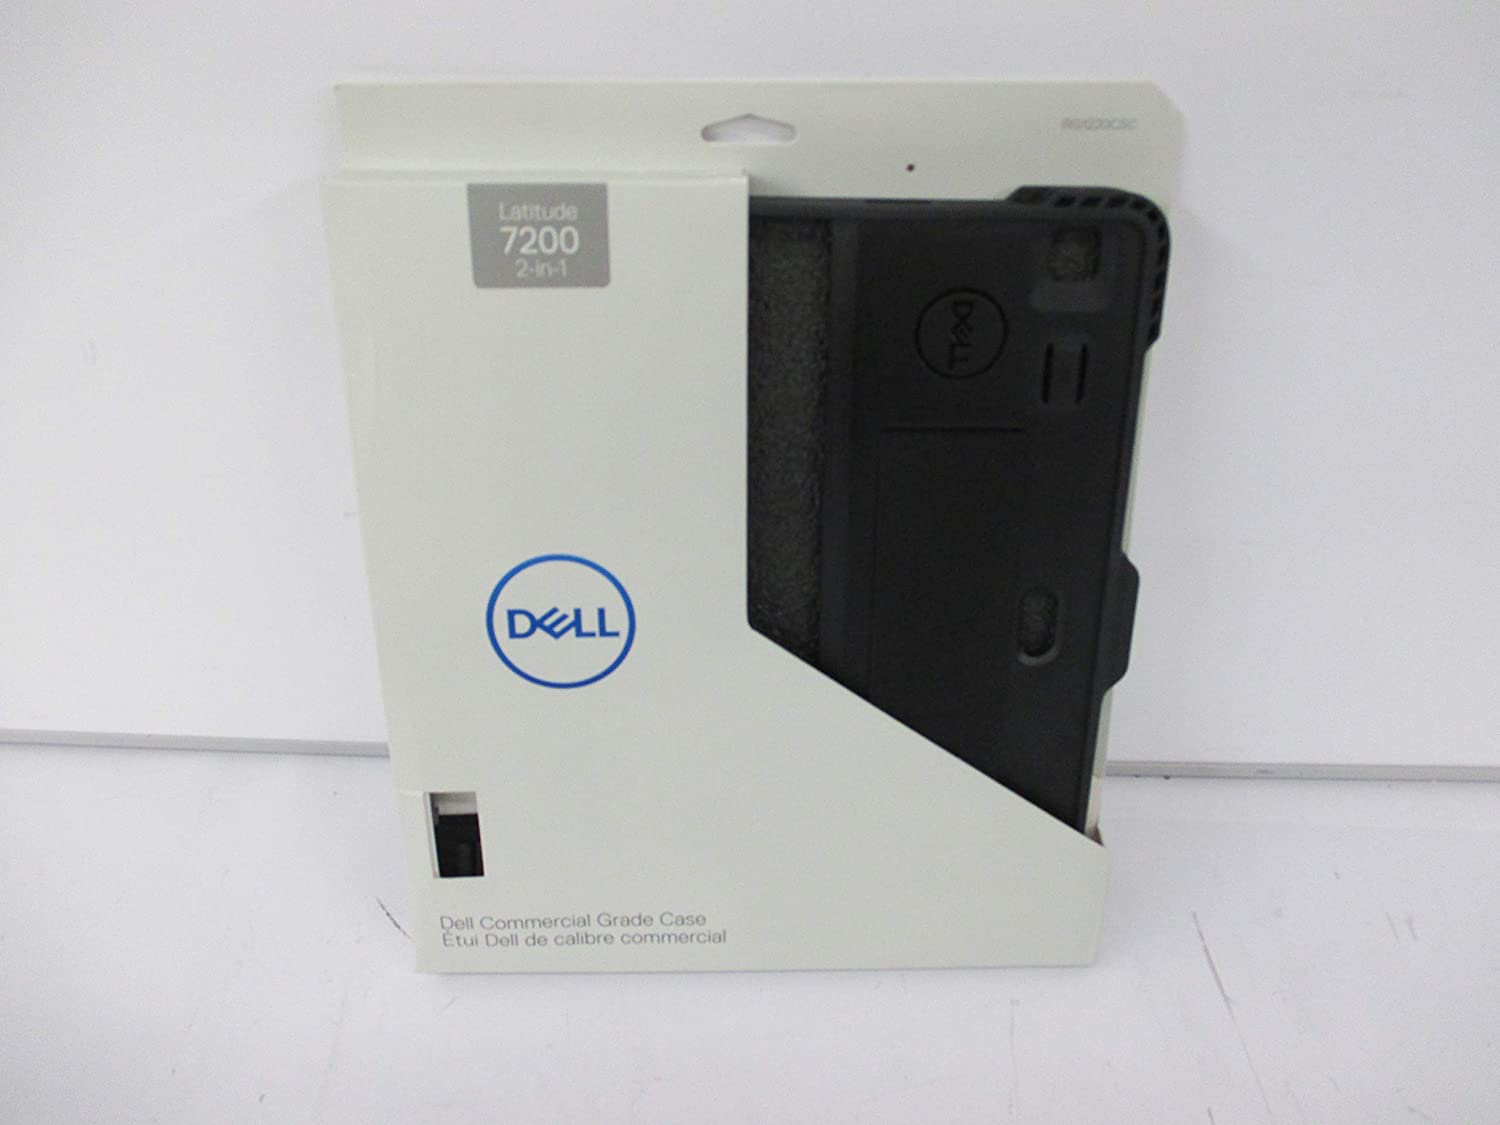 Dell Tablet PC Protective case - Black - for Latitude 7200 2-in-1